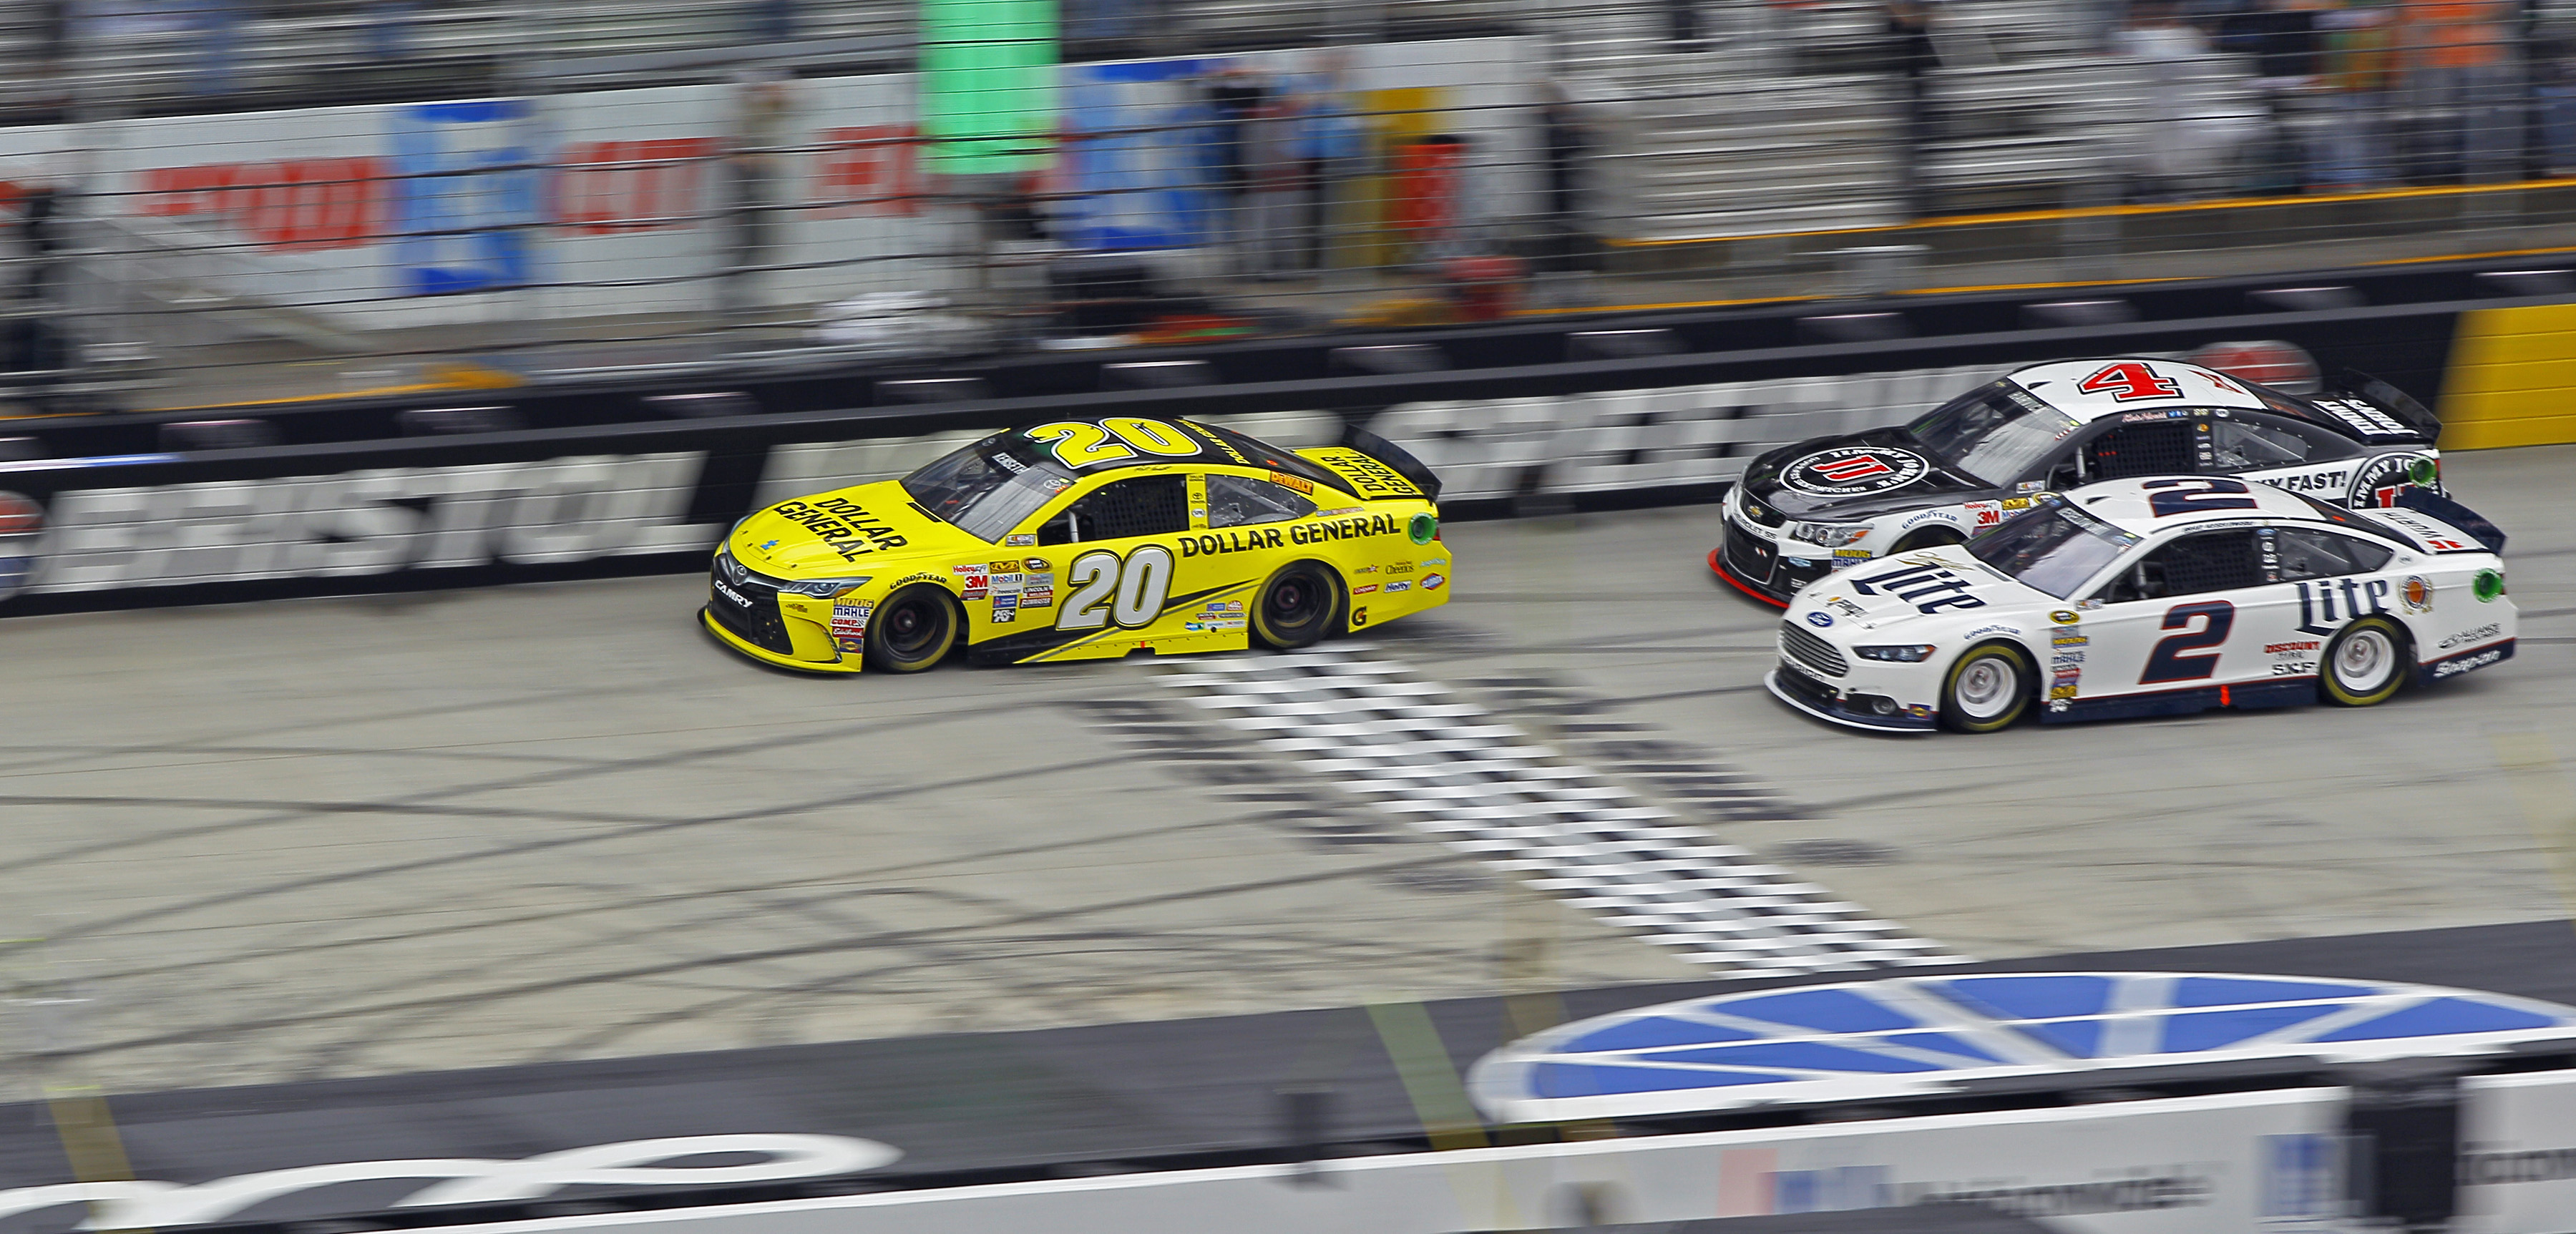 Matt Kenseth ends 51-race drought with win at rainy Bristol